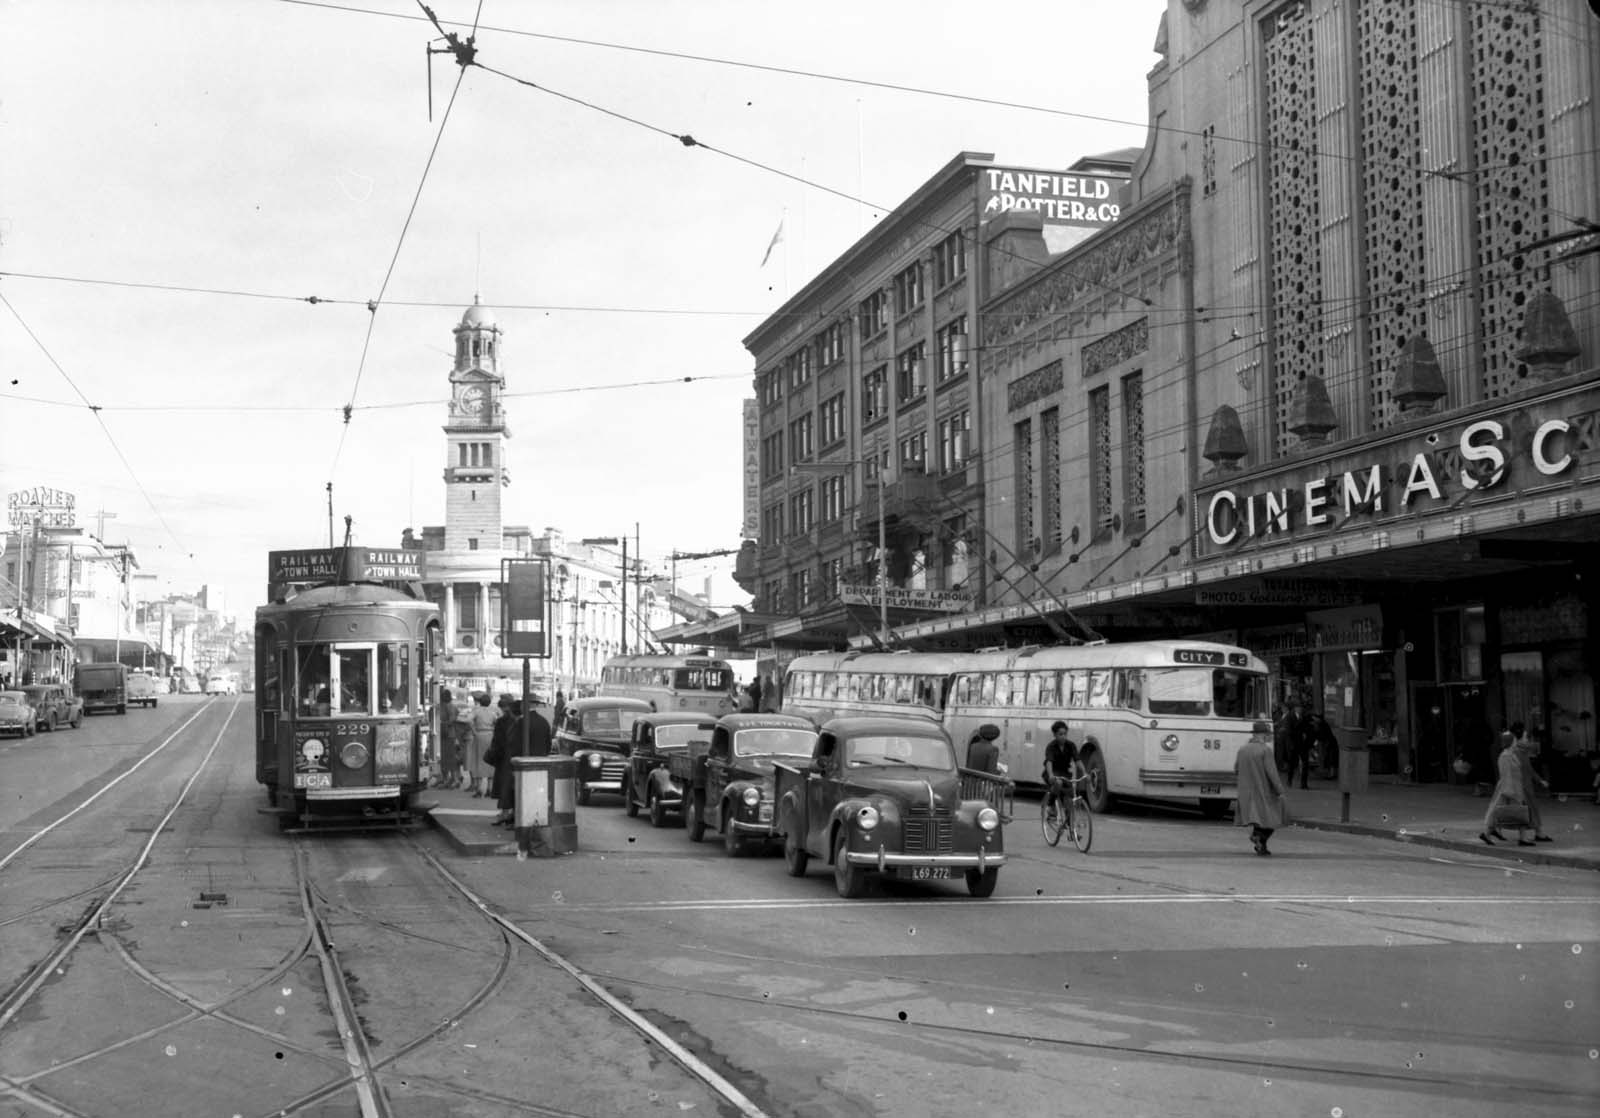 AK - 229 AND TROLLEYS BY CIVIC.jpg